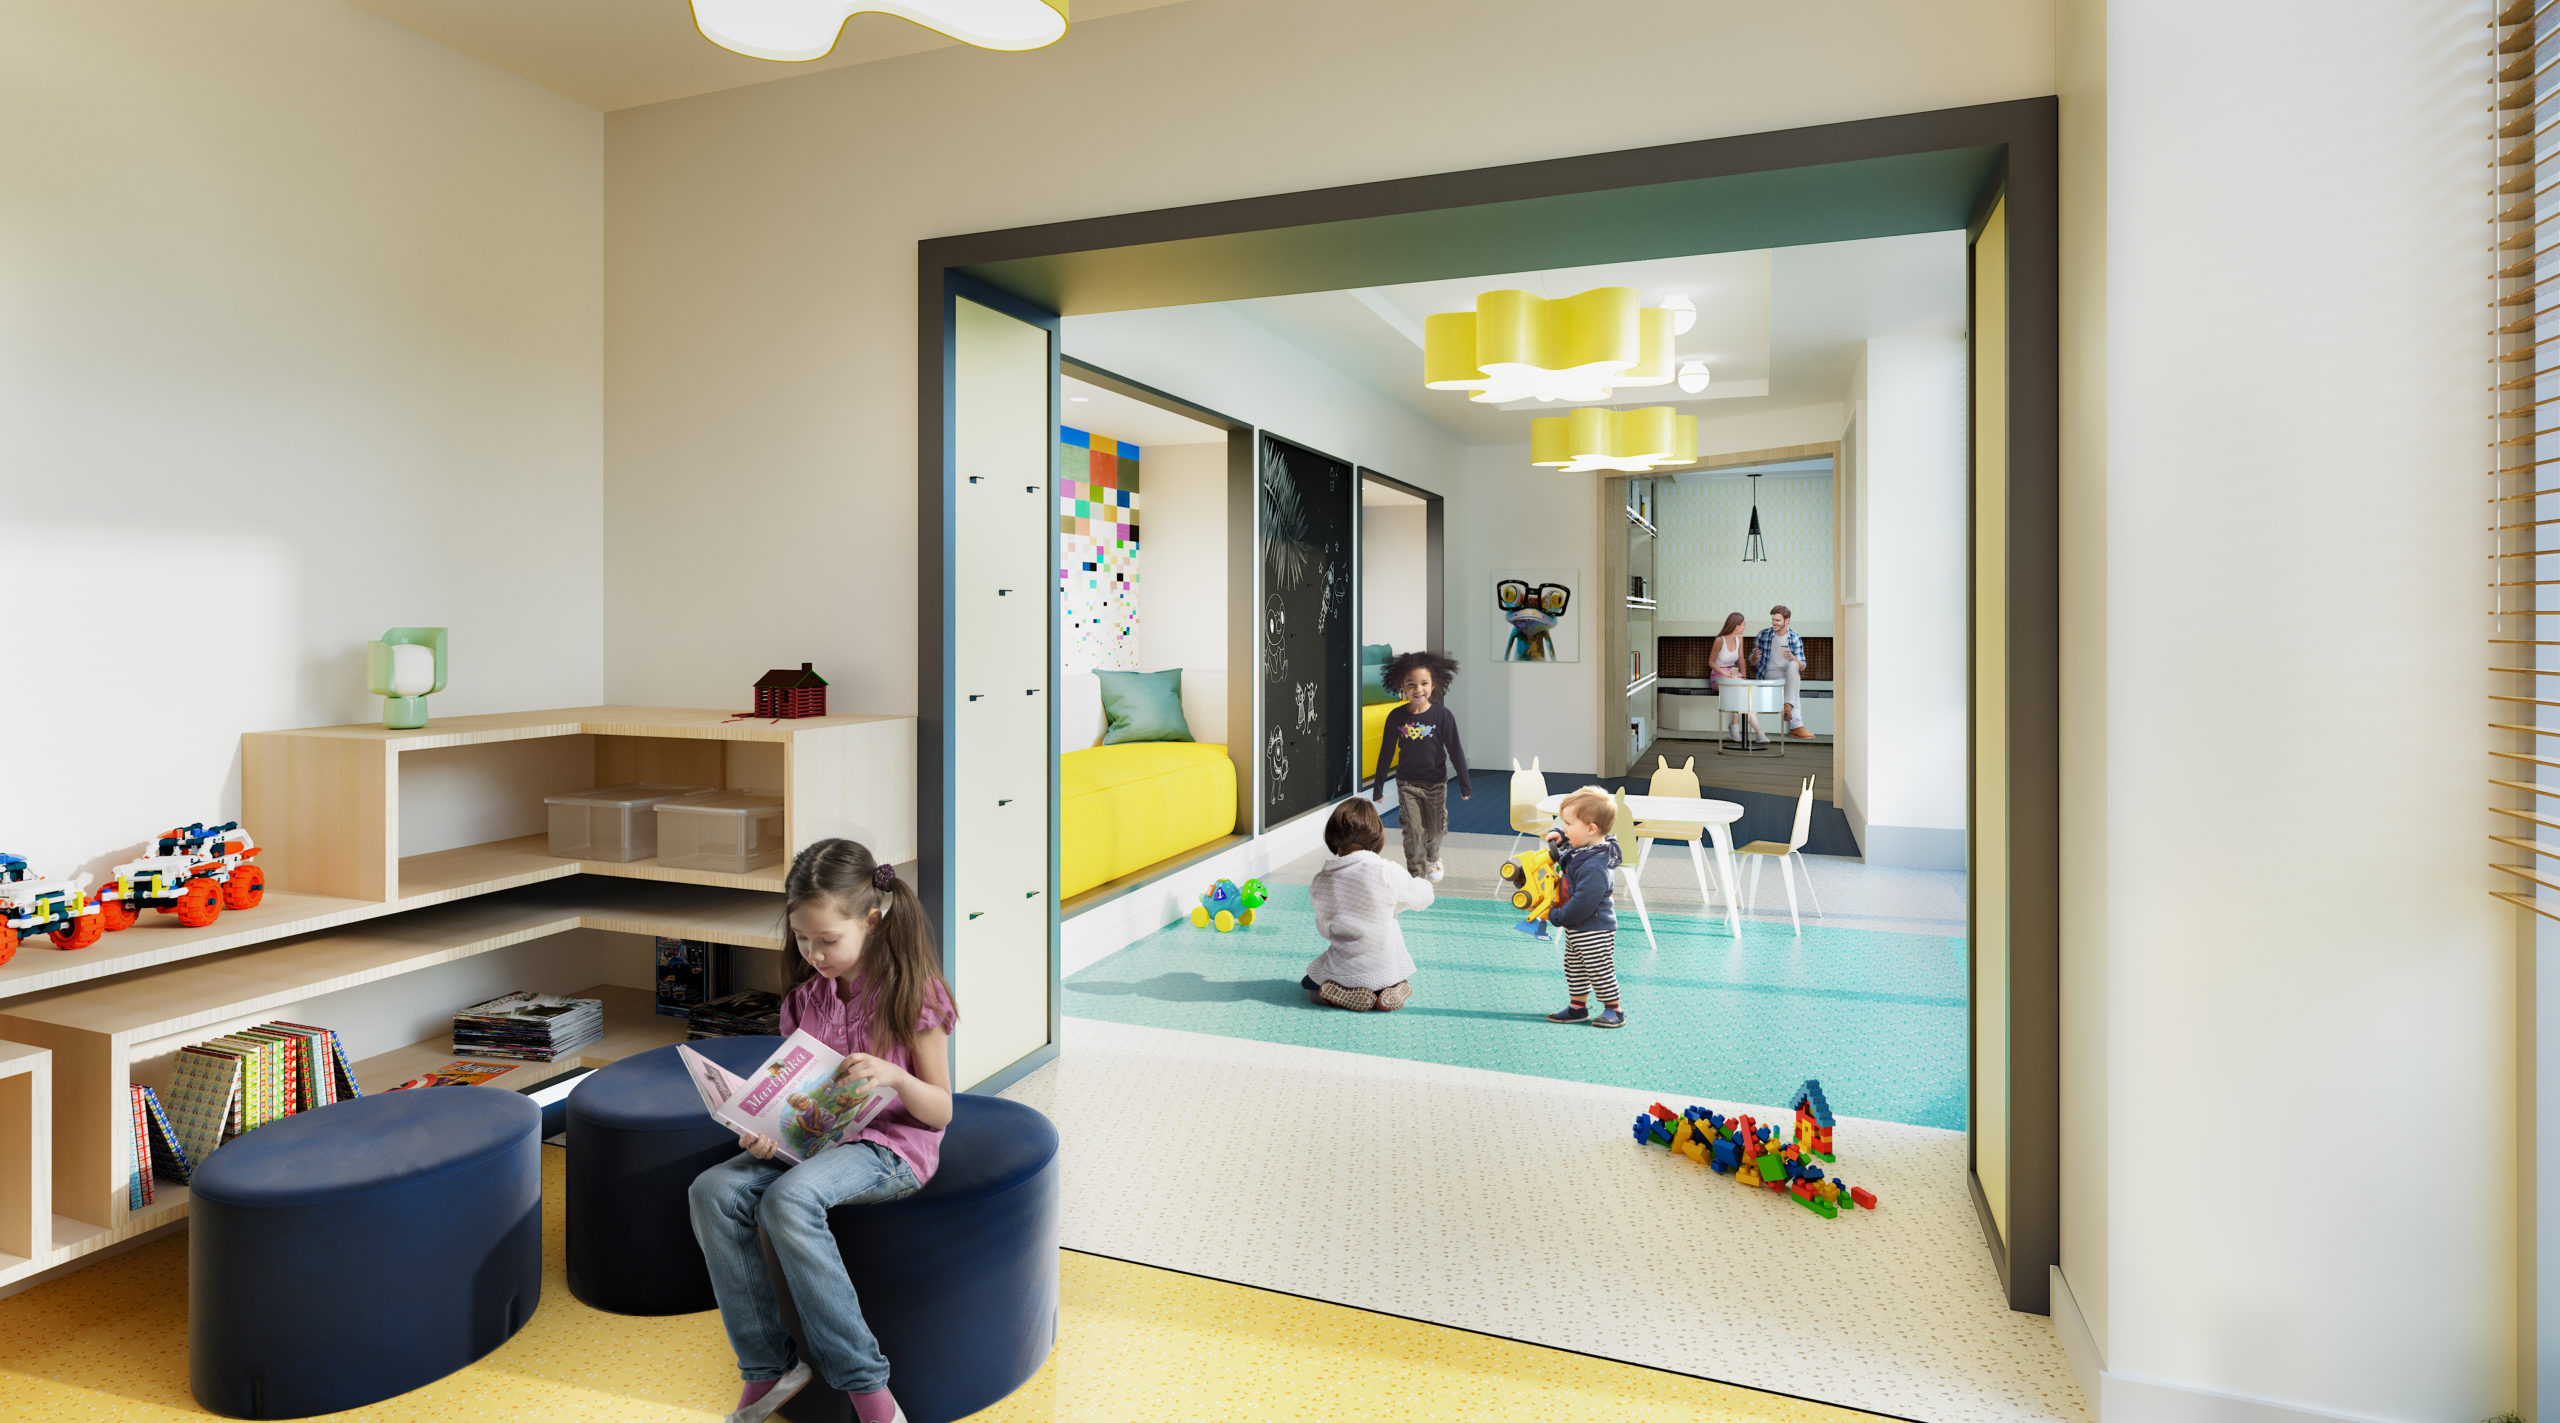 Children's learning and play area at the Vitagraph in Brooklyn, NY